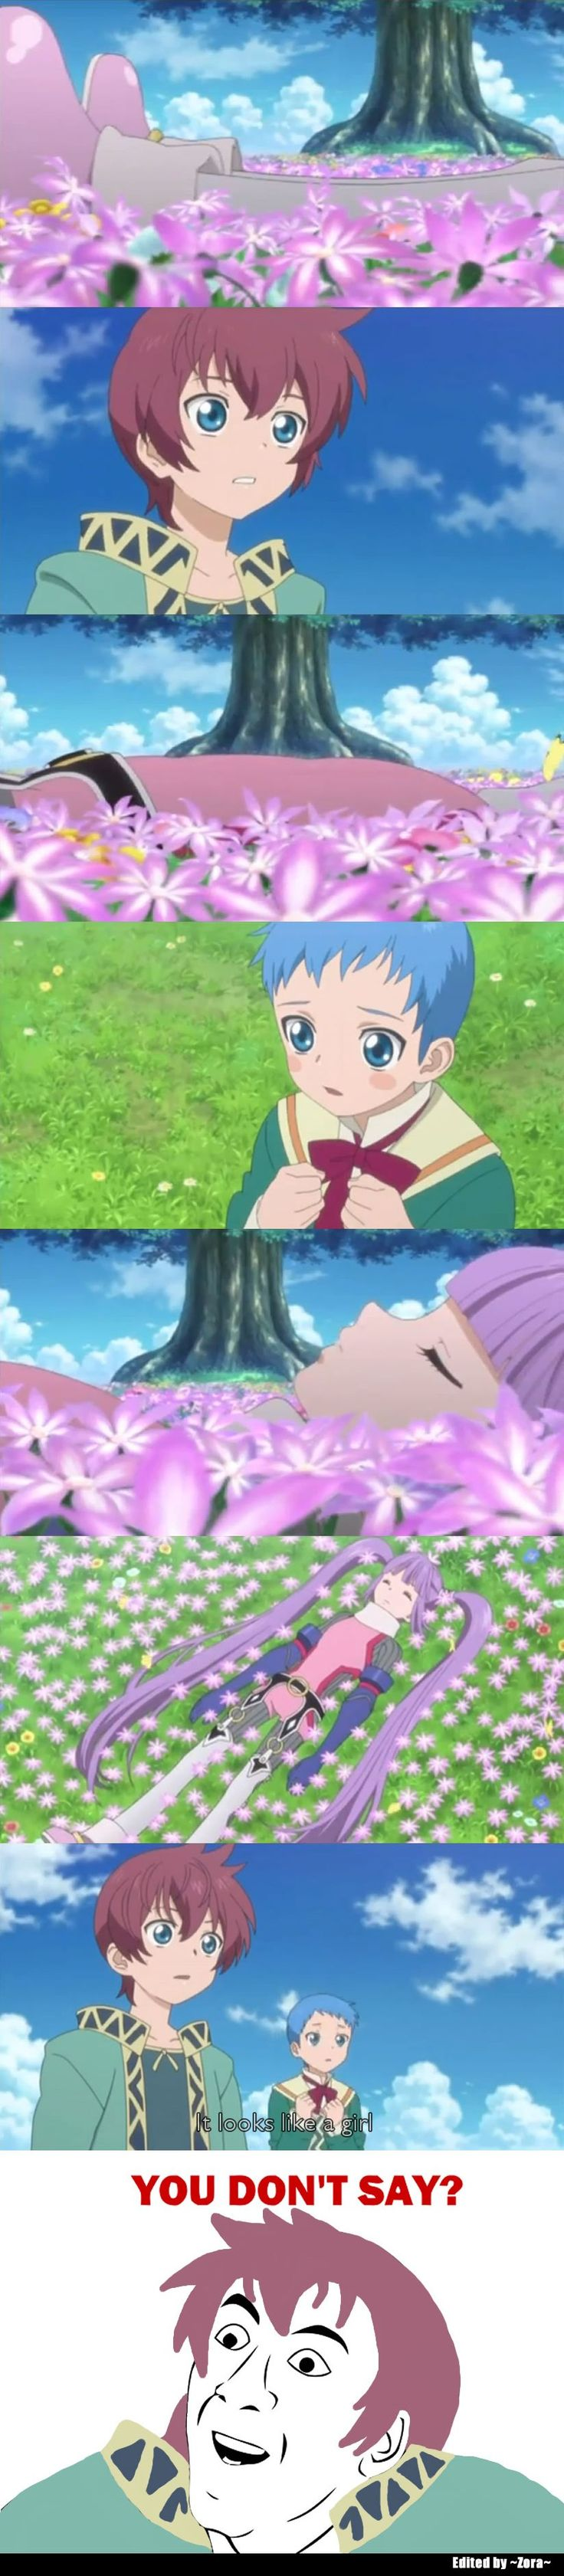 Tales of Graces F - Funny Meme by InsaneRaccoon on DeviantArt